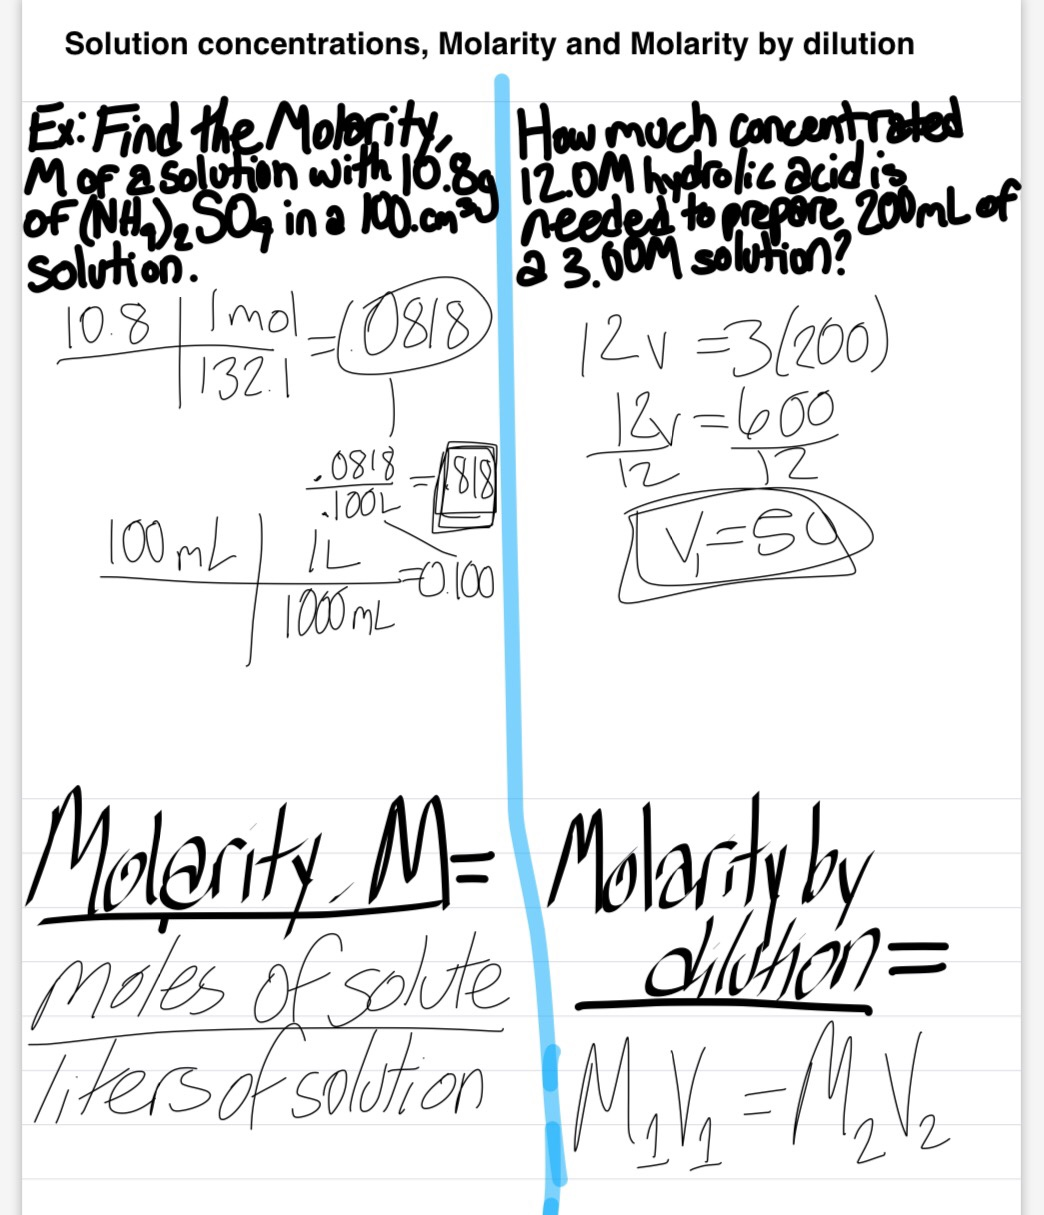 unit 2 lecture 3 mass percent This unit consists of the following objectives for you to master  page 2: mole to mole stoichiometry page 3&4: mass-mass stoichiometry  my lecture: percent.